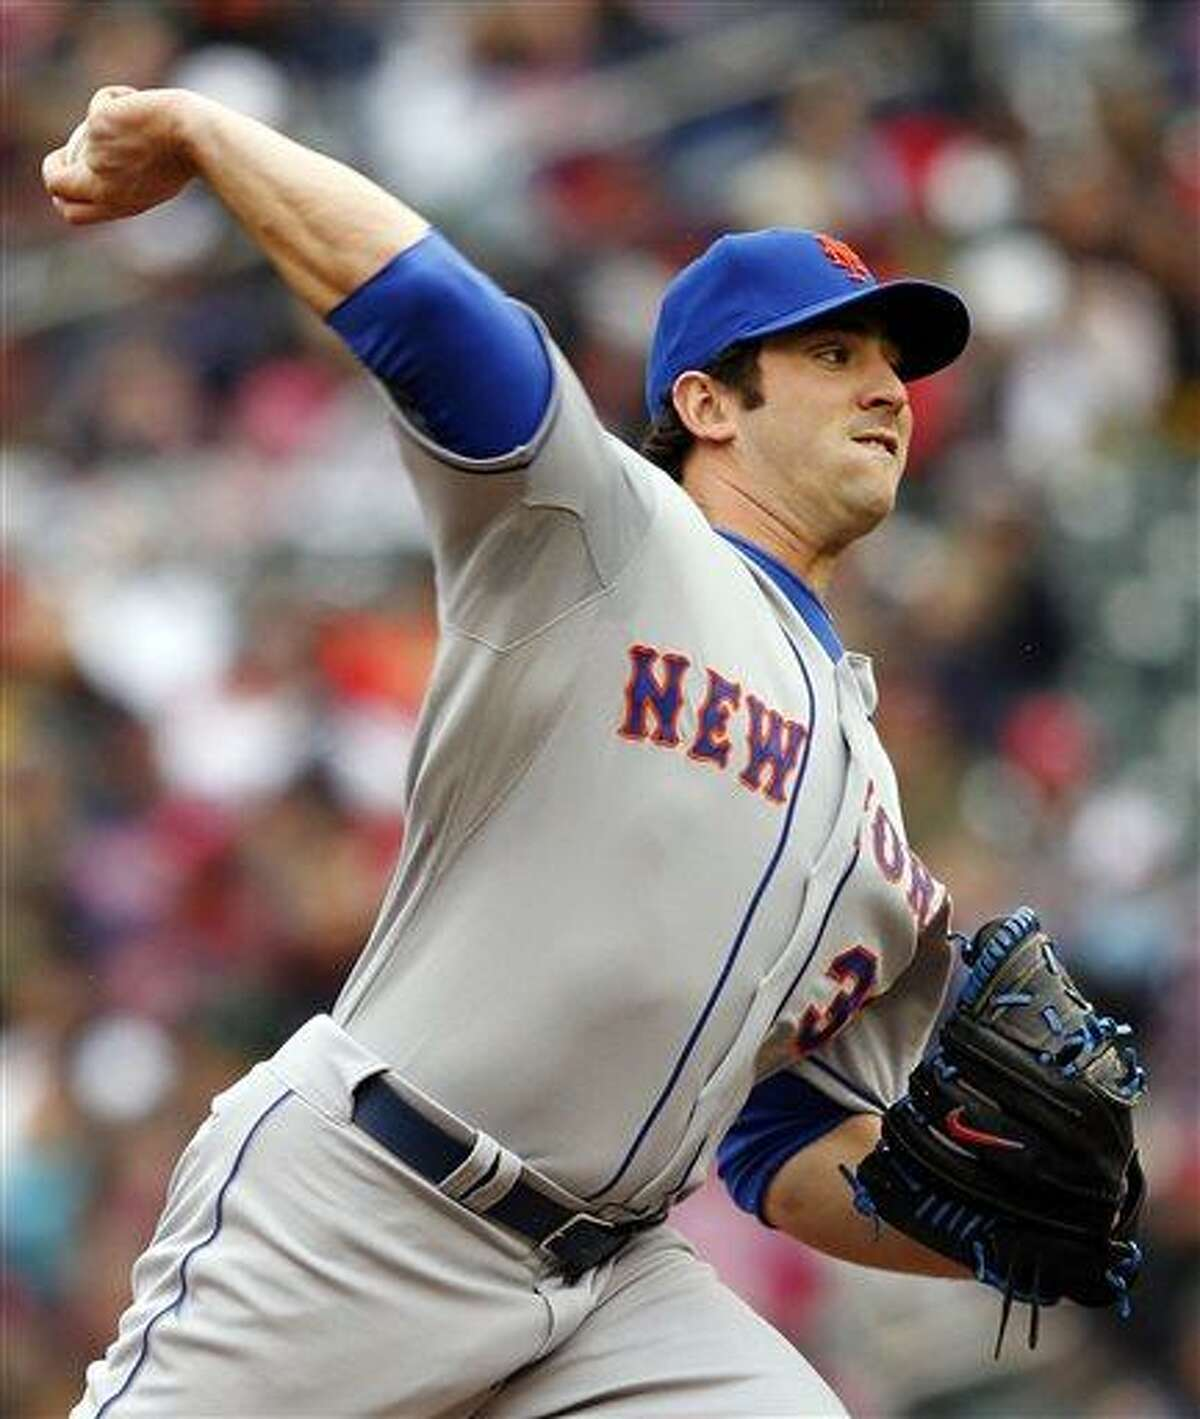 New York Mets starting pitcher Matt Harvey throws against the Minnesota Twins during the first inning of a baseball game Saturday, April 13, 2013, in Minneapolis. Harvey had the win and the Mets defeated the Twins 4-2. (AP Photo/Genevieve Ross)